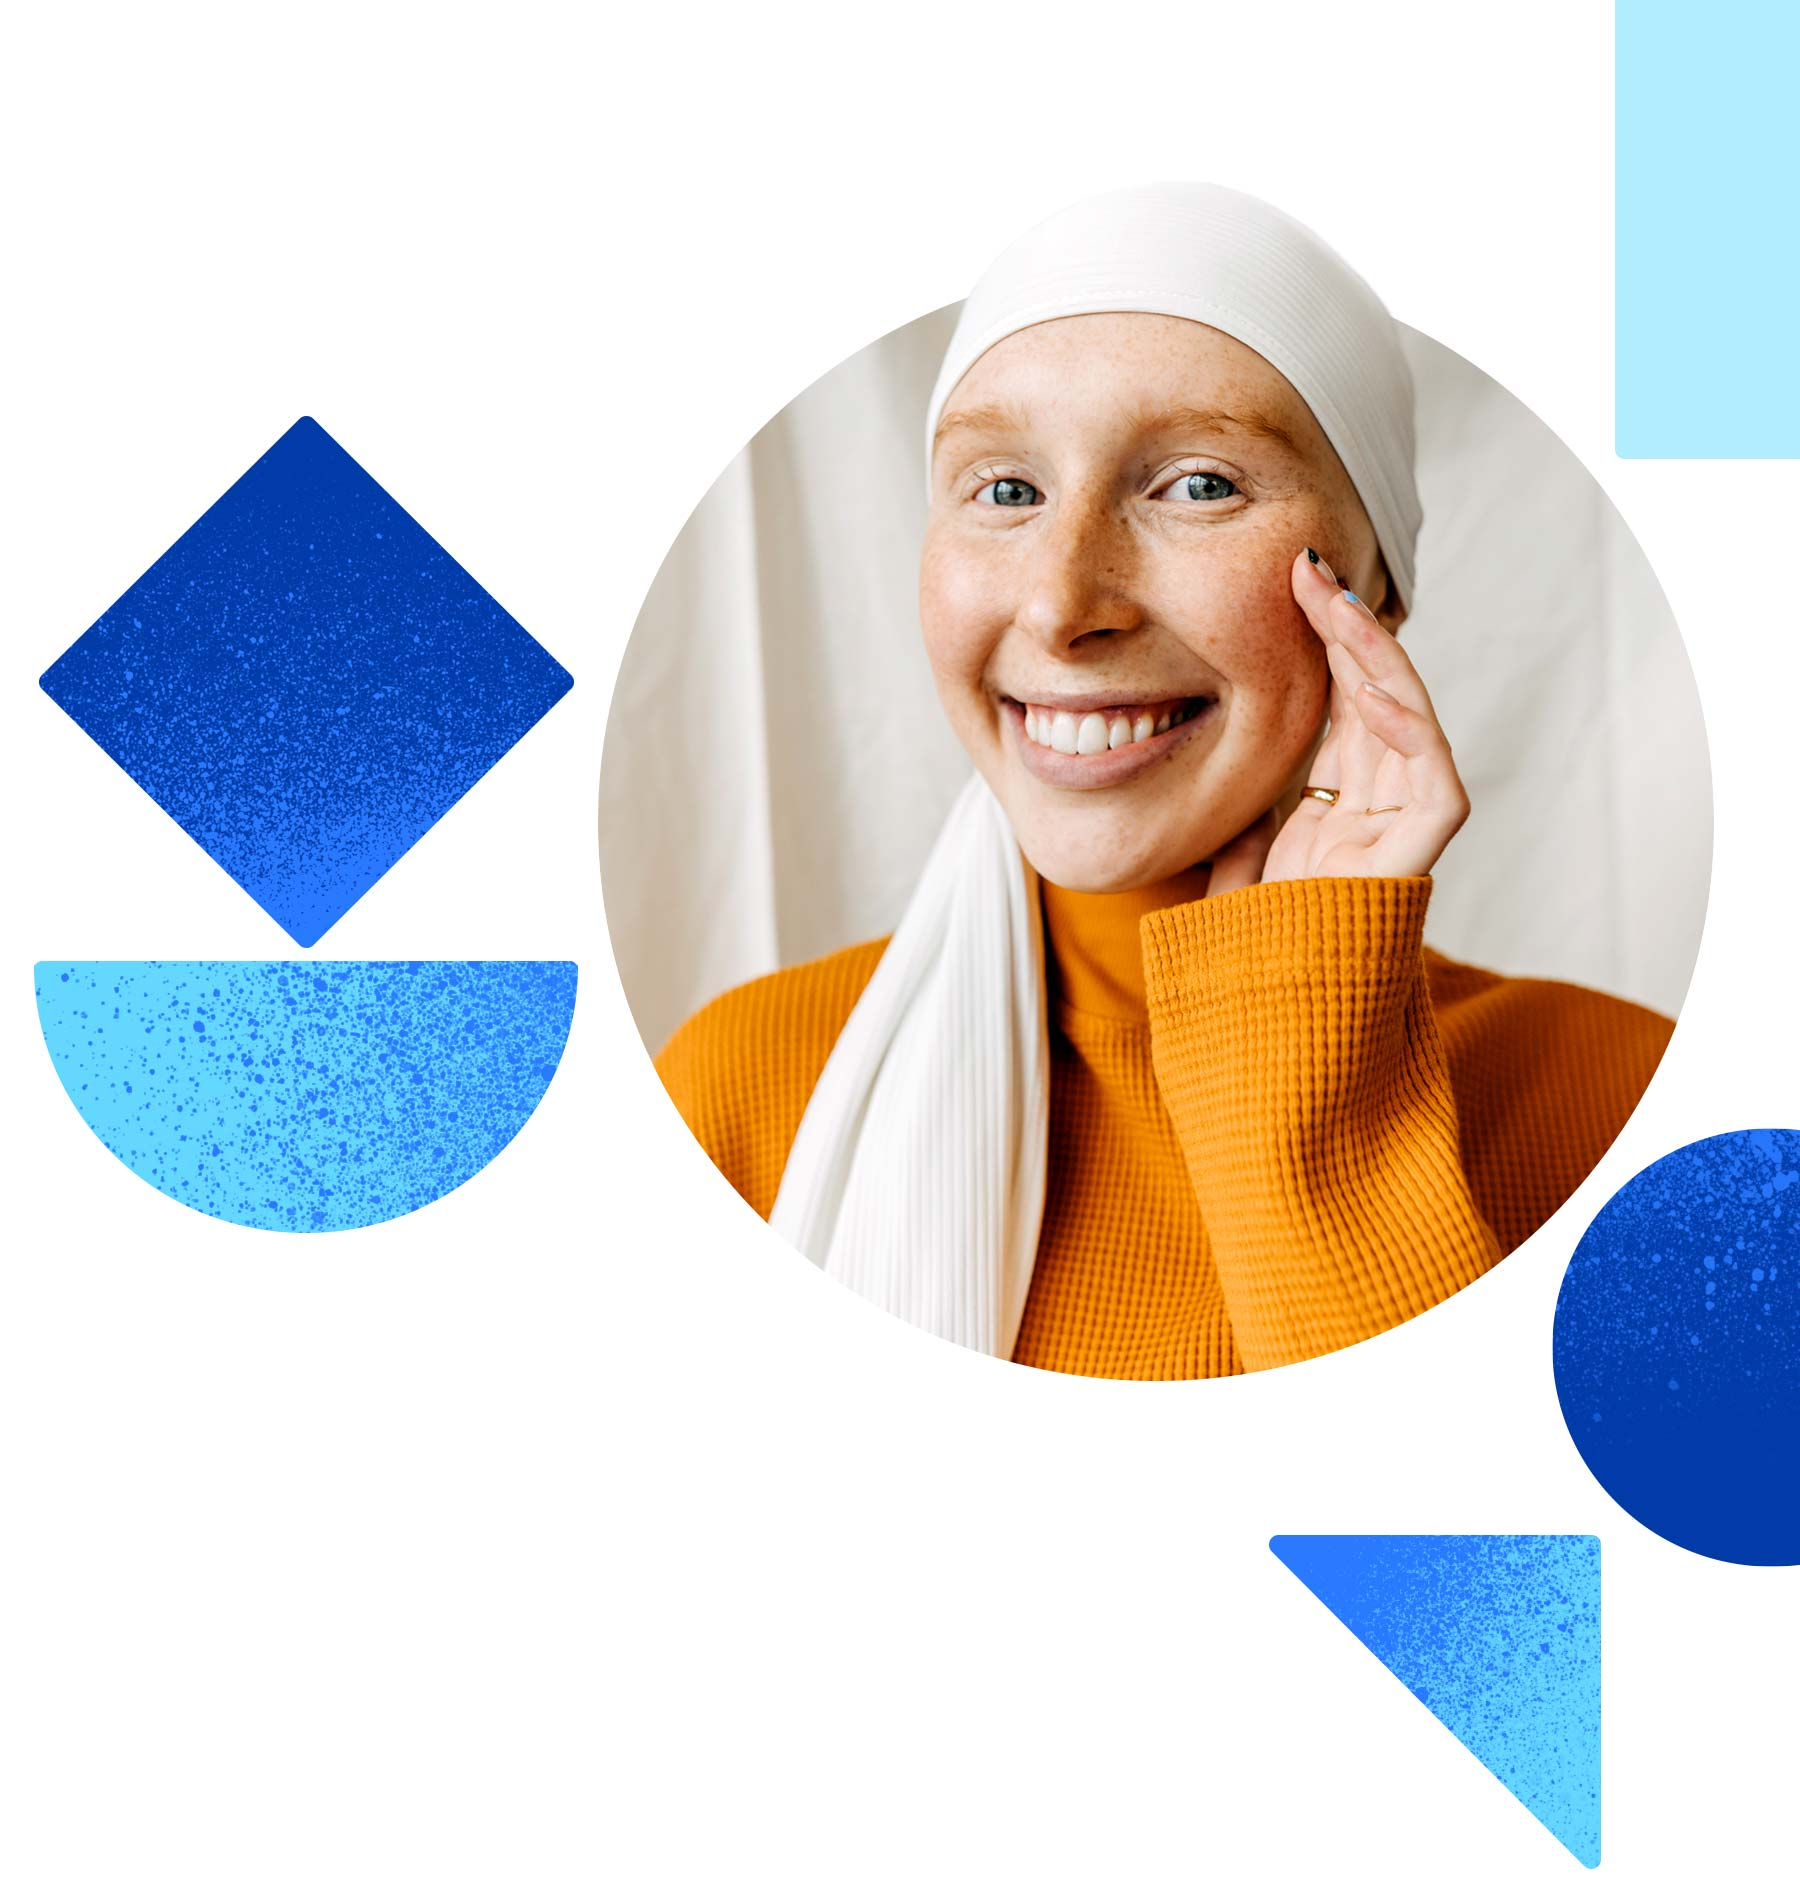 A woman wearing a head wrap smiles at us. She looks hopeful in the midst of cancer treatment.